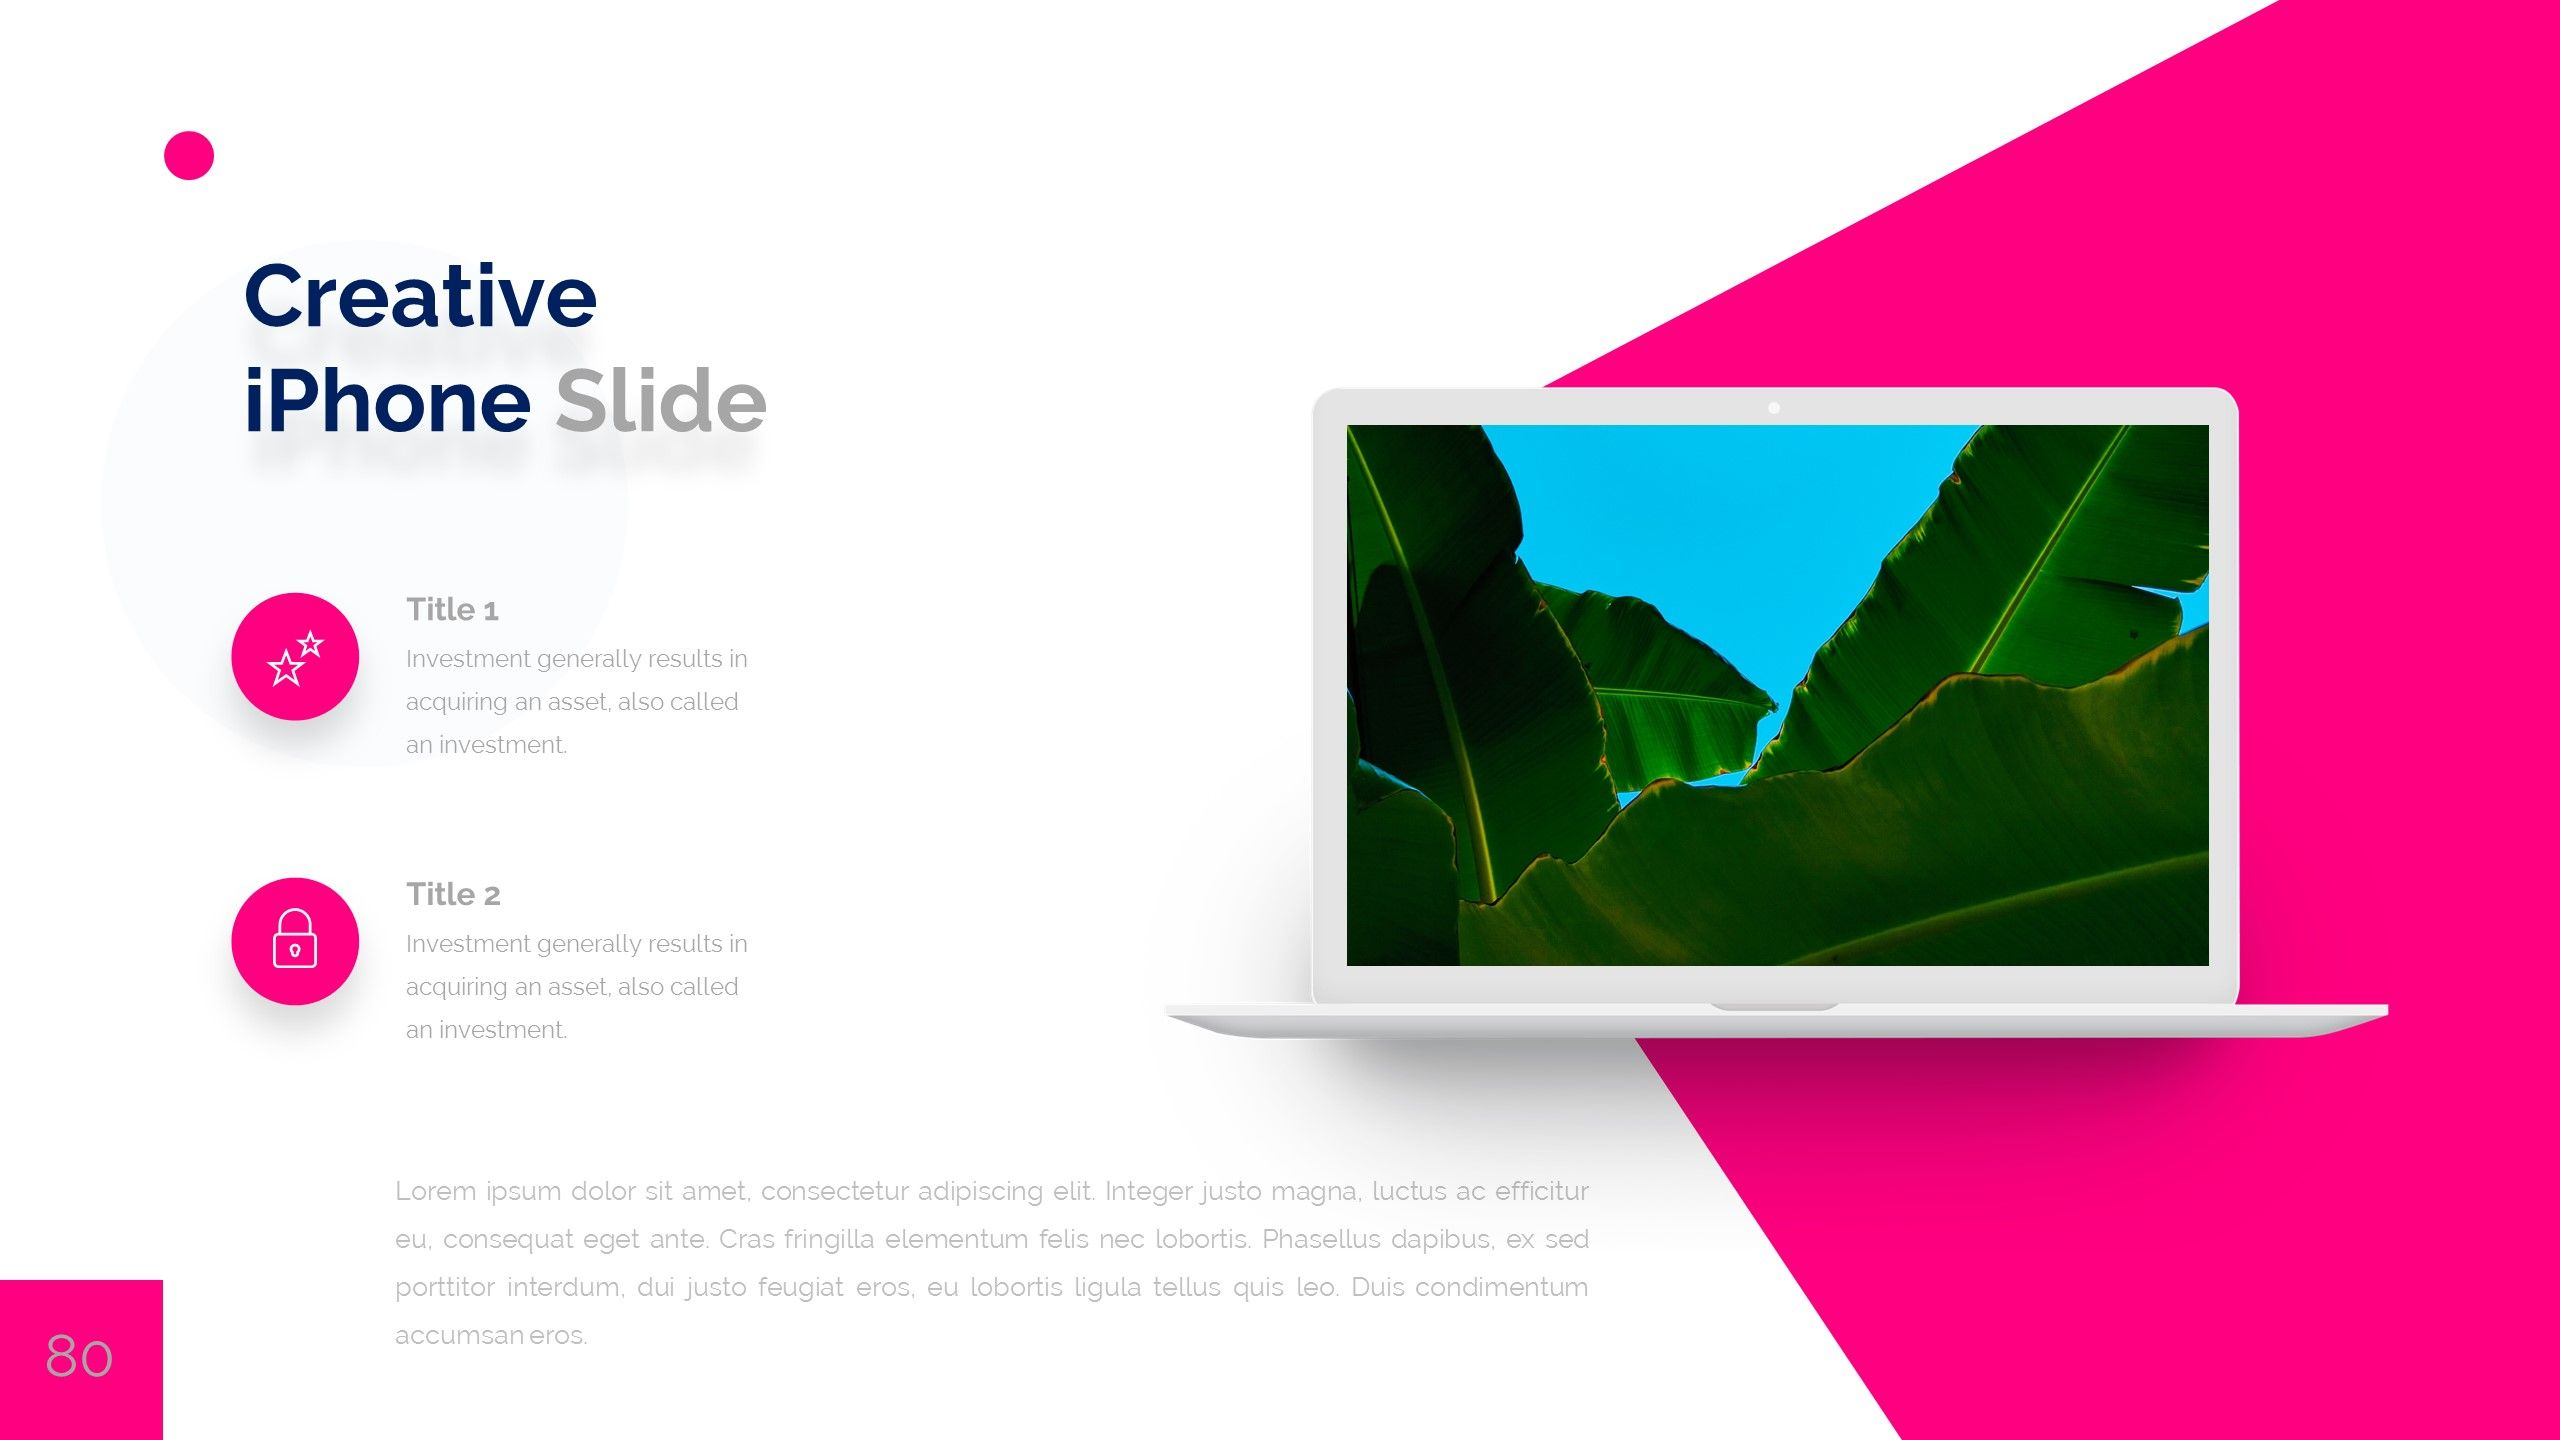 Puls 2 Powerpoint Presentation Template #Powerpoint, #Puls